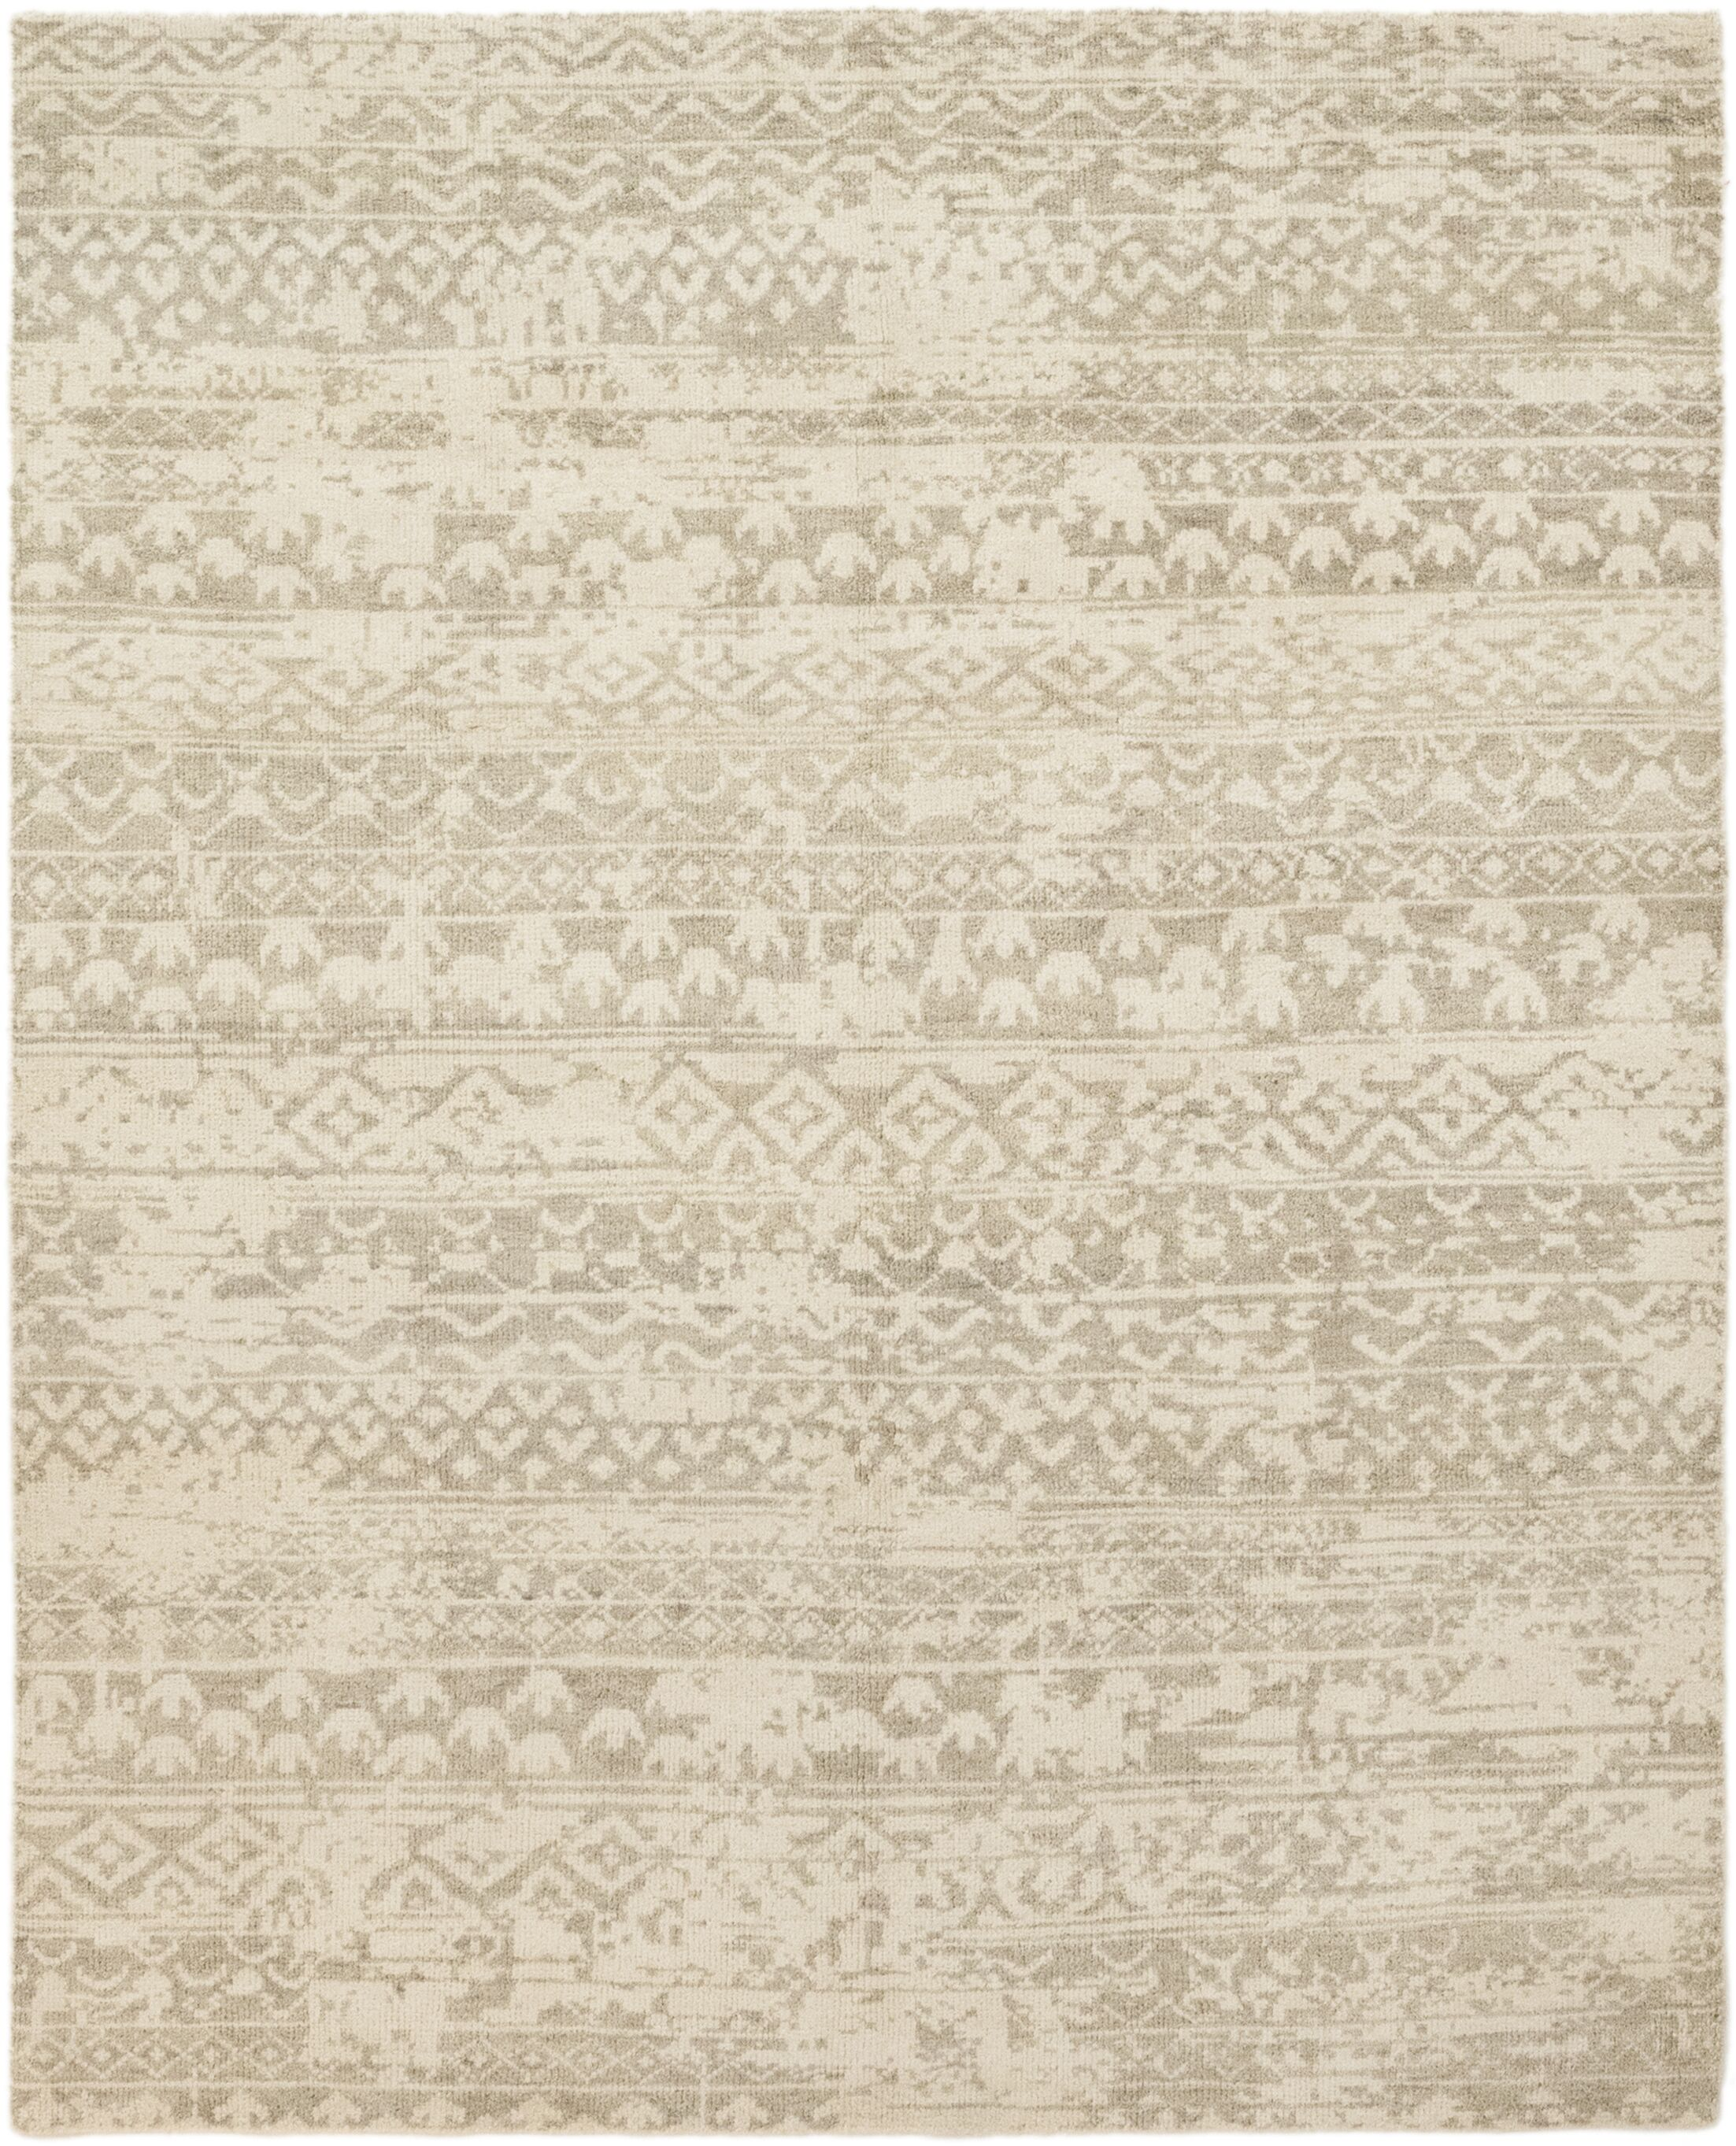 One-of-a-Kind Dominique Hand-Knotted Wool Beige Indoor Area Rug